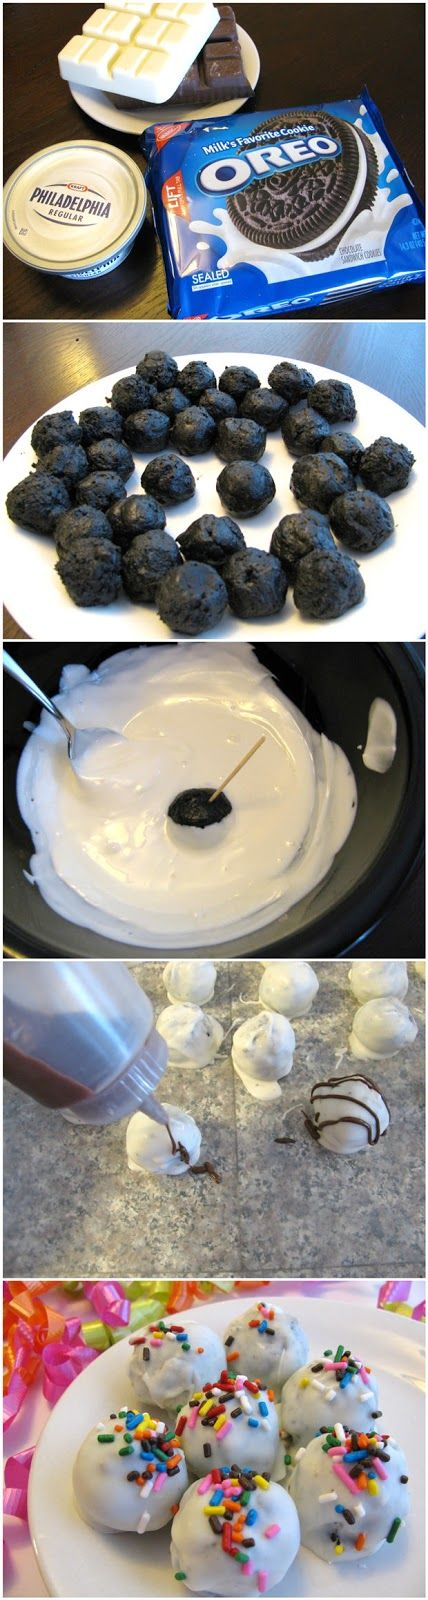 Oreo Balls @Emily Schoenfeld Schoenfeld Schoenfeld Schoenfeld Schoenfeld Schoenfeld Schoenfeld Alyssa Jones we are so doing this next weekend.. holy fat.